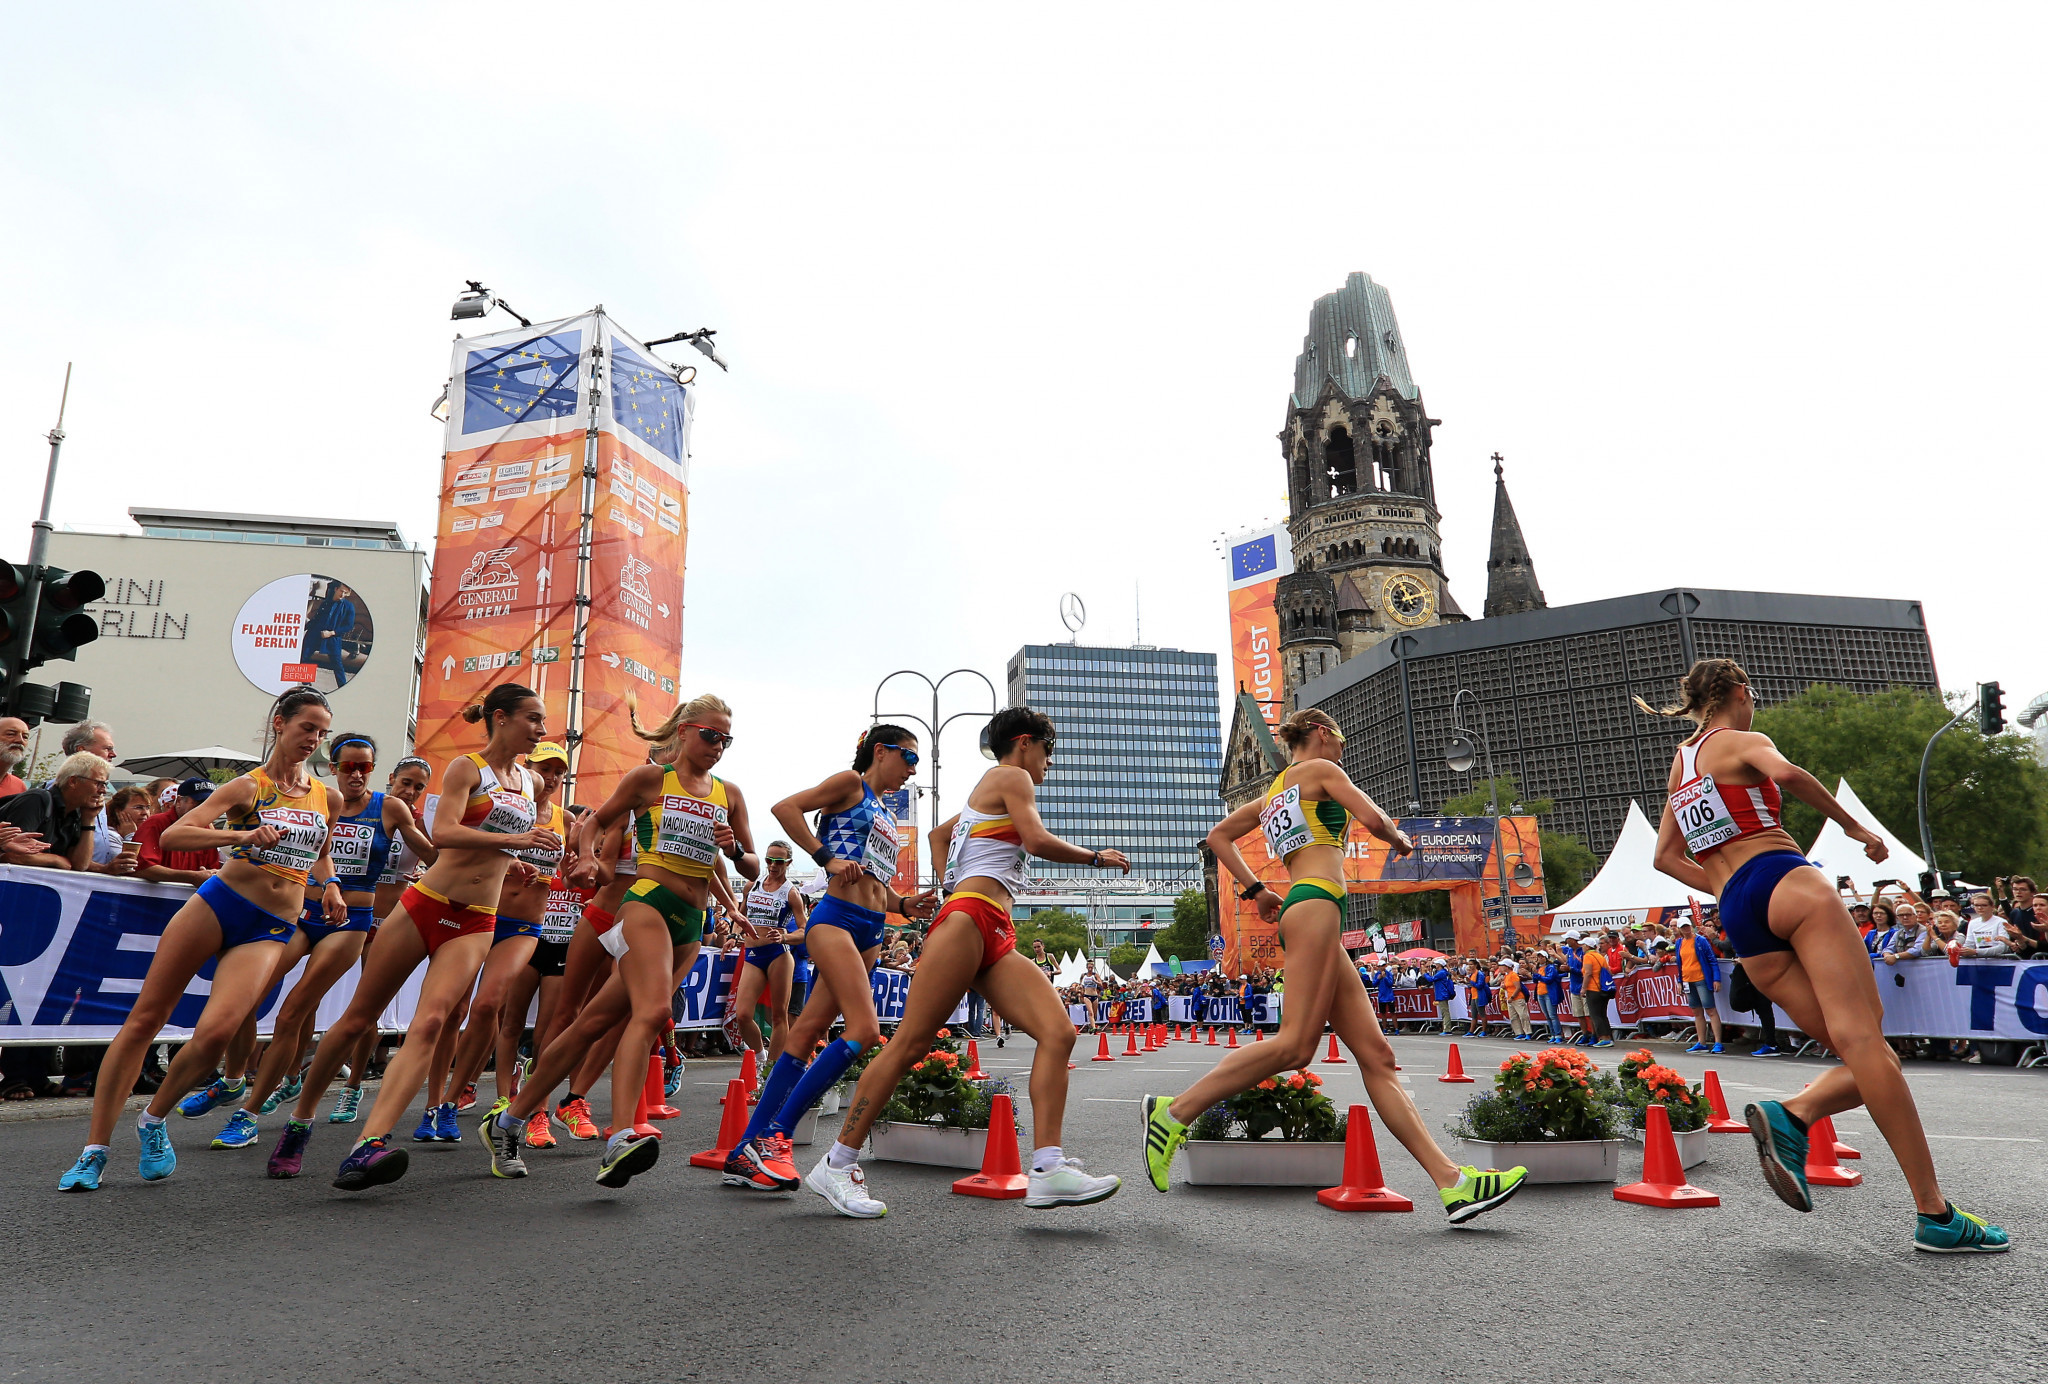 A wish to have greater equality between men and women race walkers has been cited as being among the main reasons by the IAAF for introducing new distances ©Getty Images